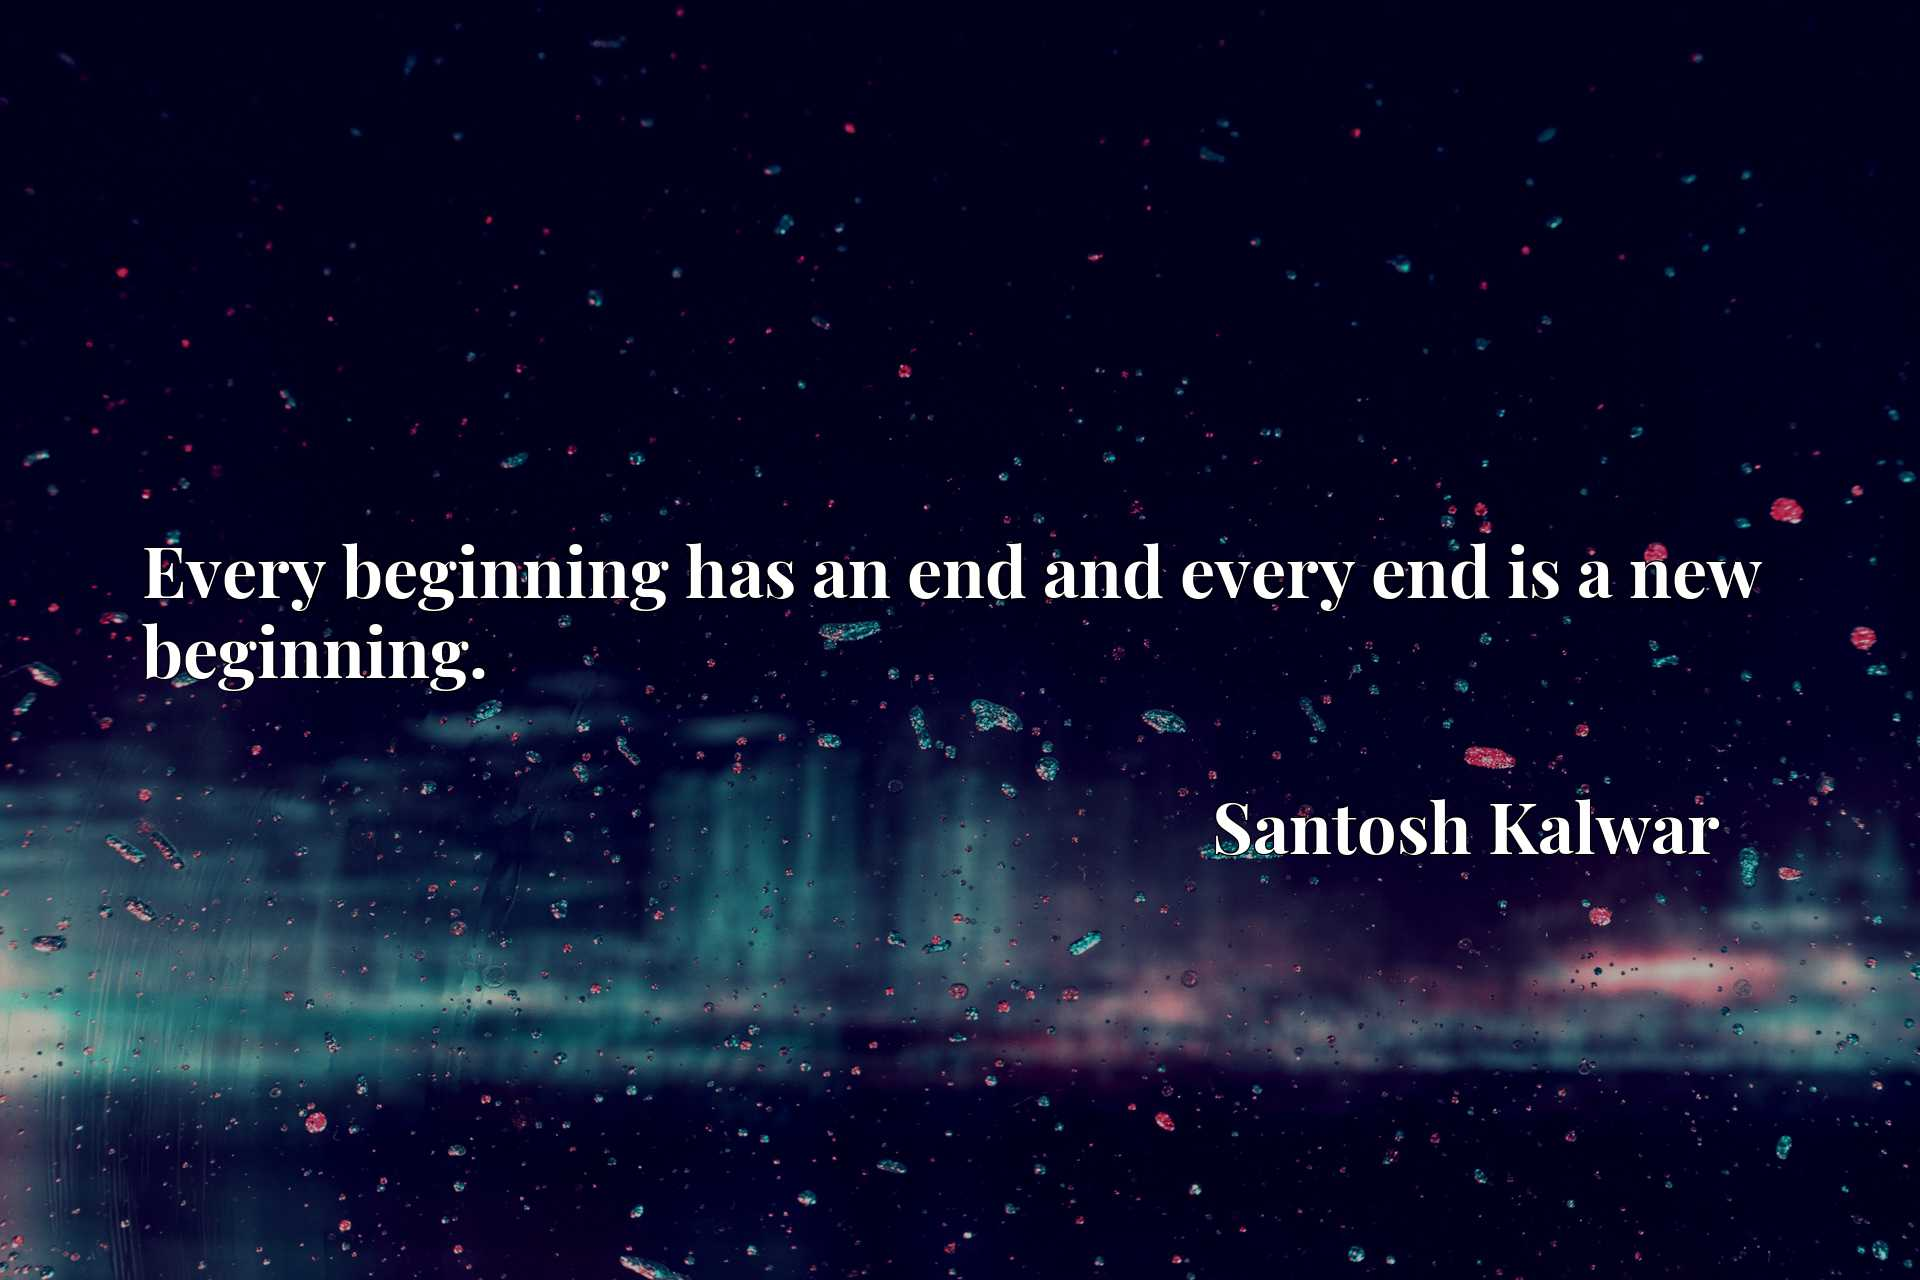 Every beginning has an end and every end is a new beginning.